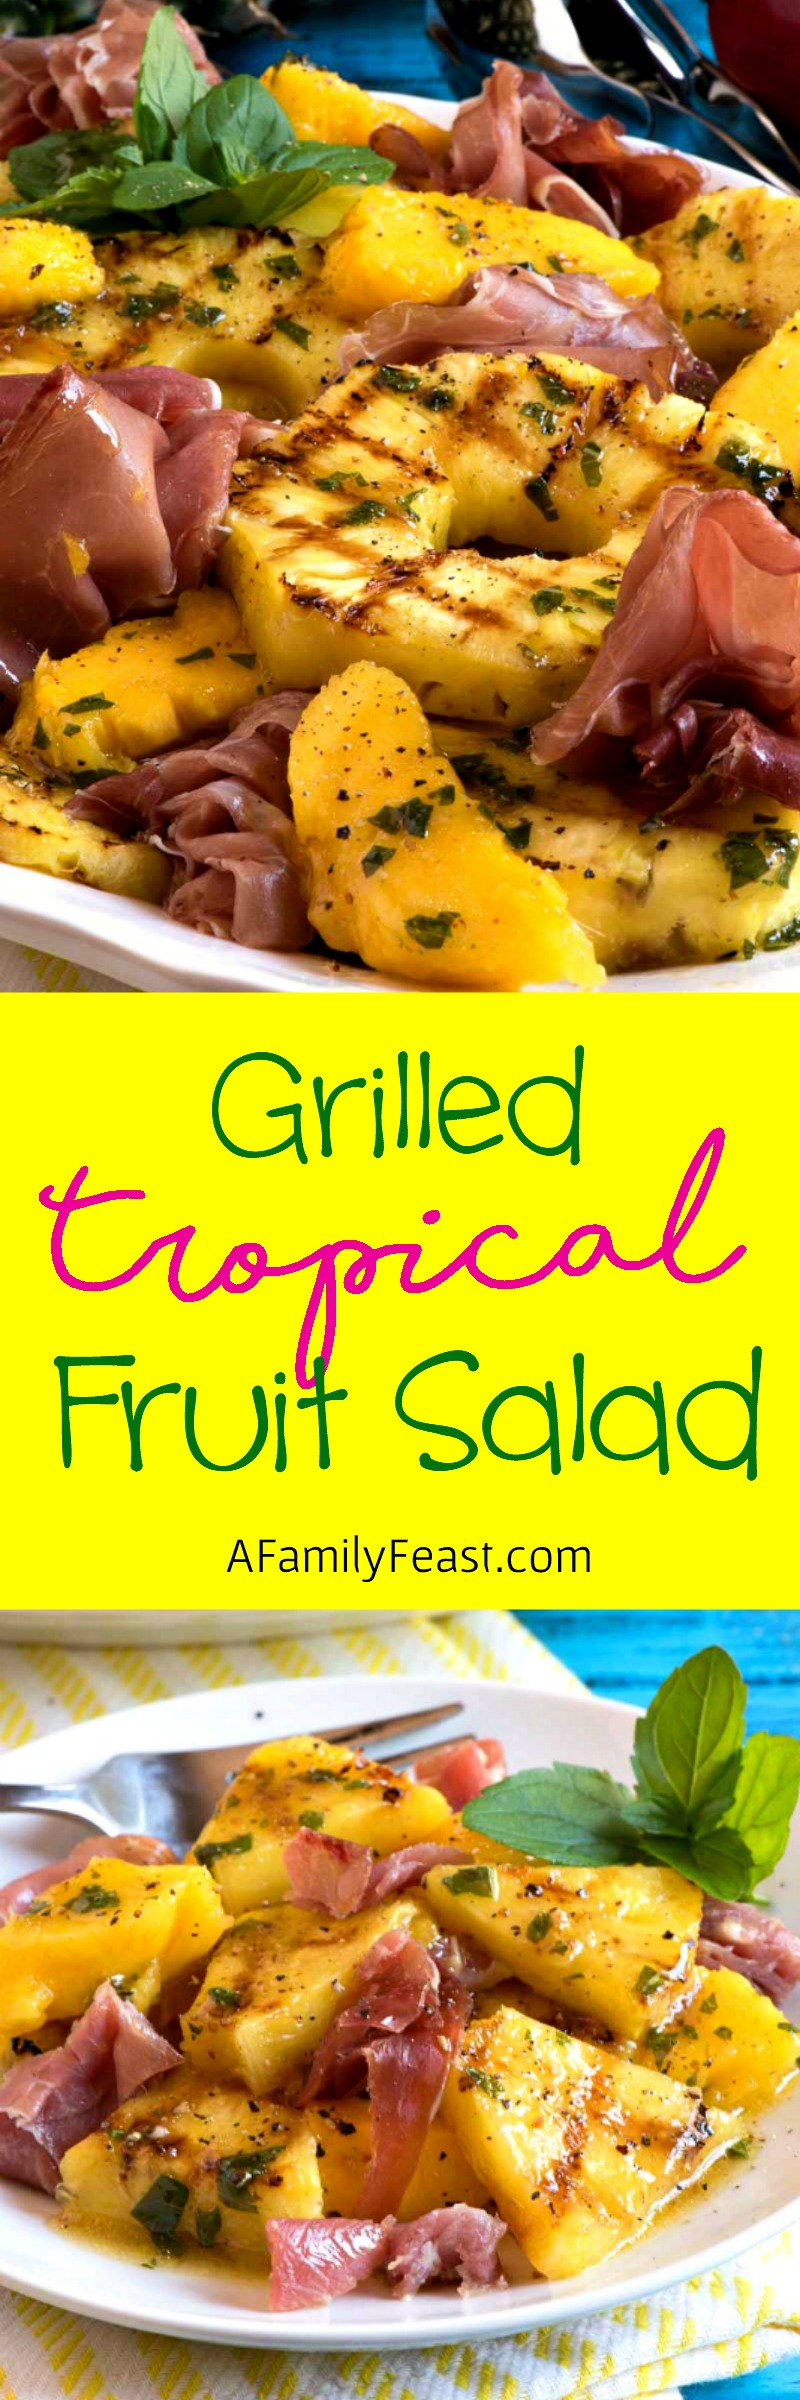 The sweet and savory flavors in this Grilled Tropical Fruit Salad with Prosciutto will have your taste buds dancing!